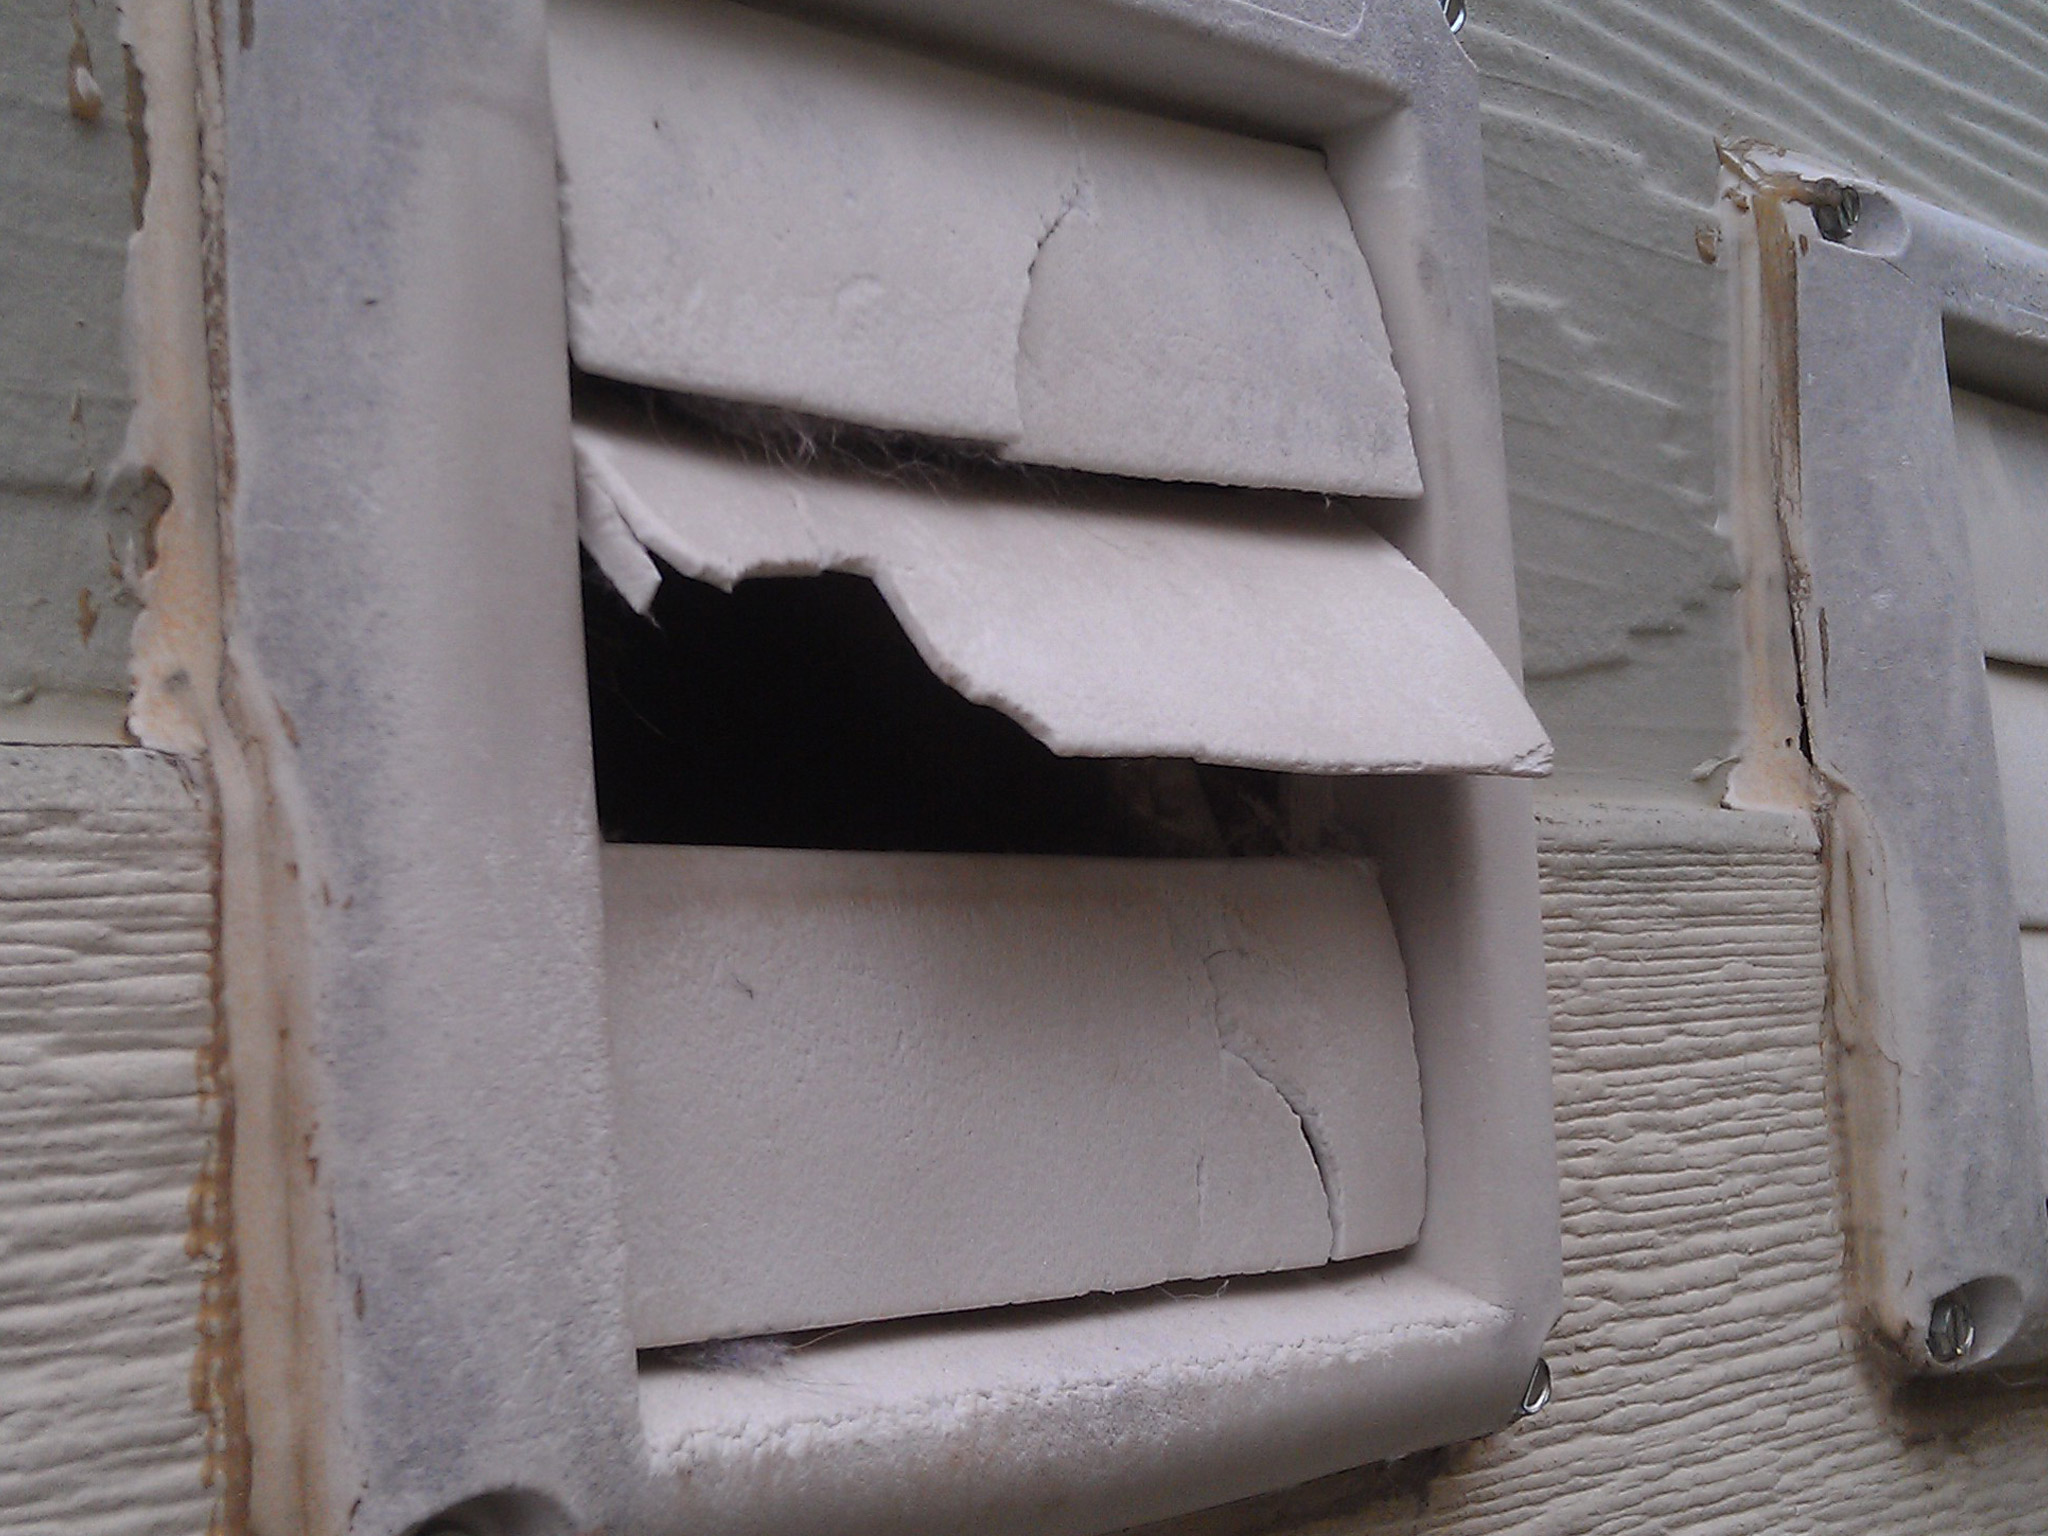 Vent Problems Photo Gallery